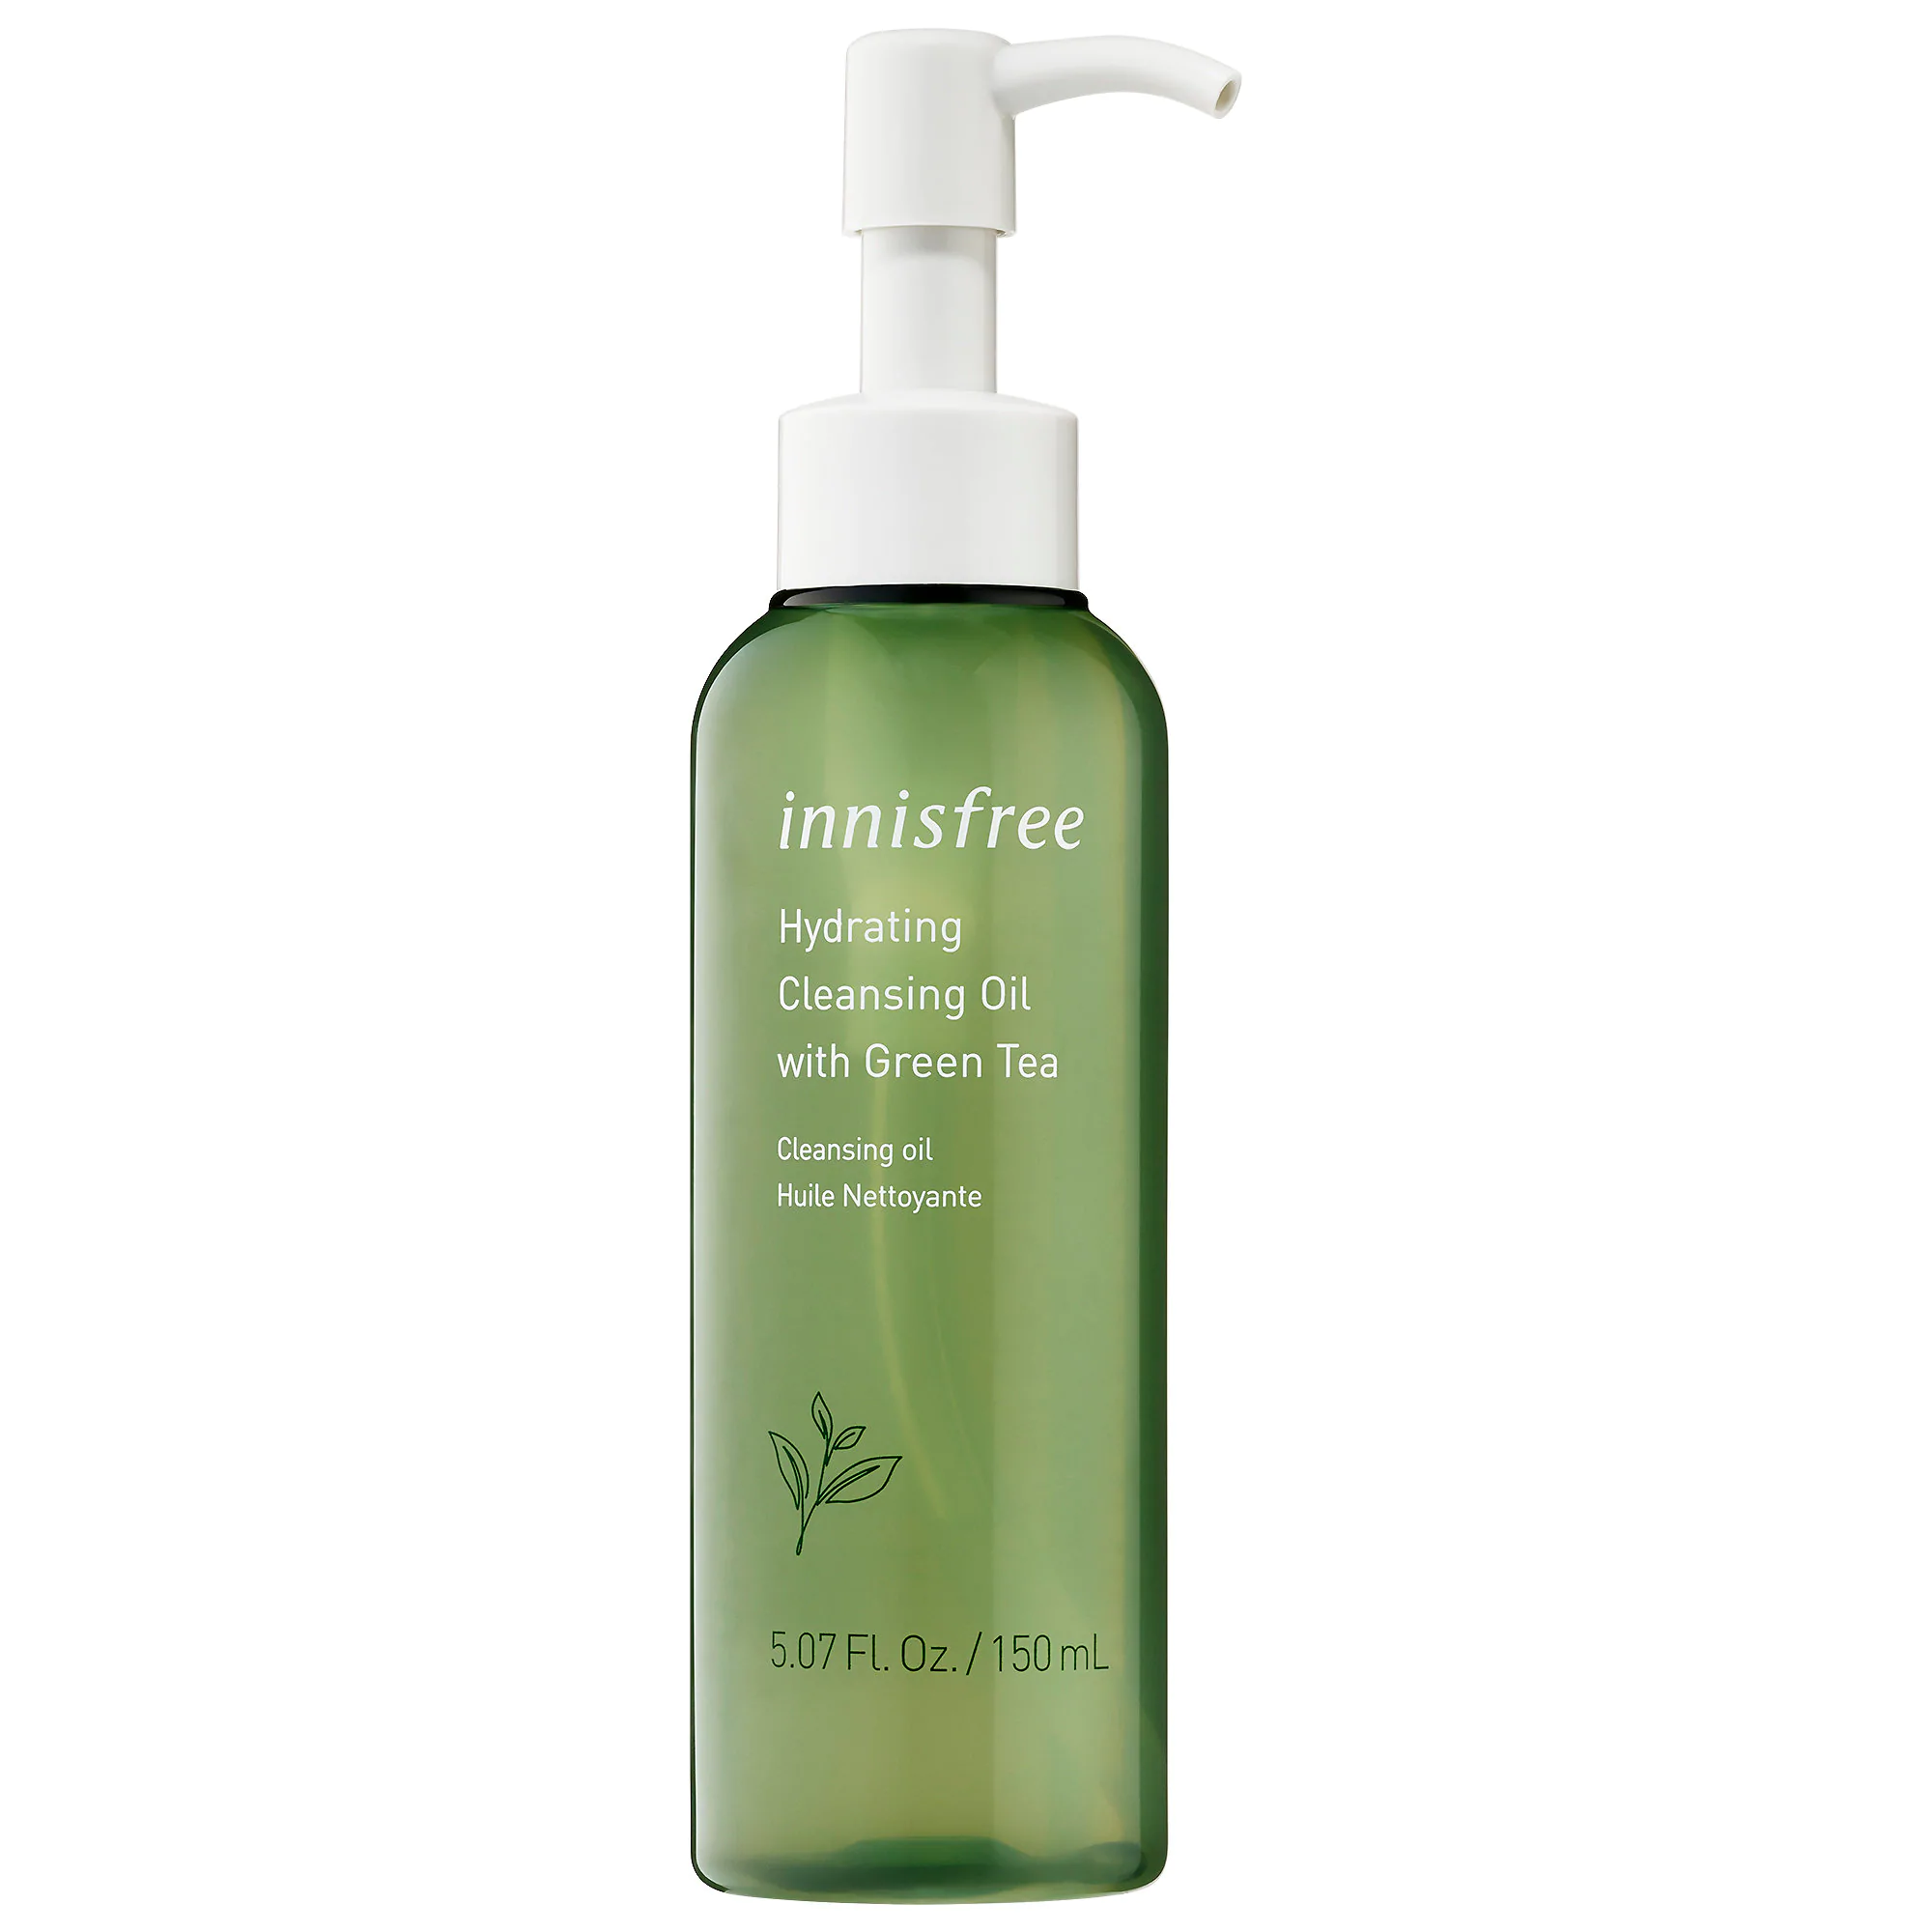 innisfree-Green Tea Hydrating Cleansing Oil